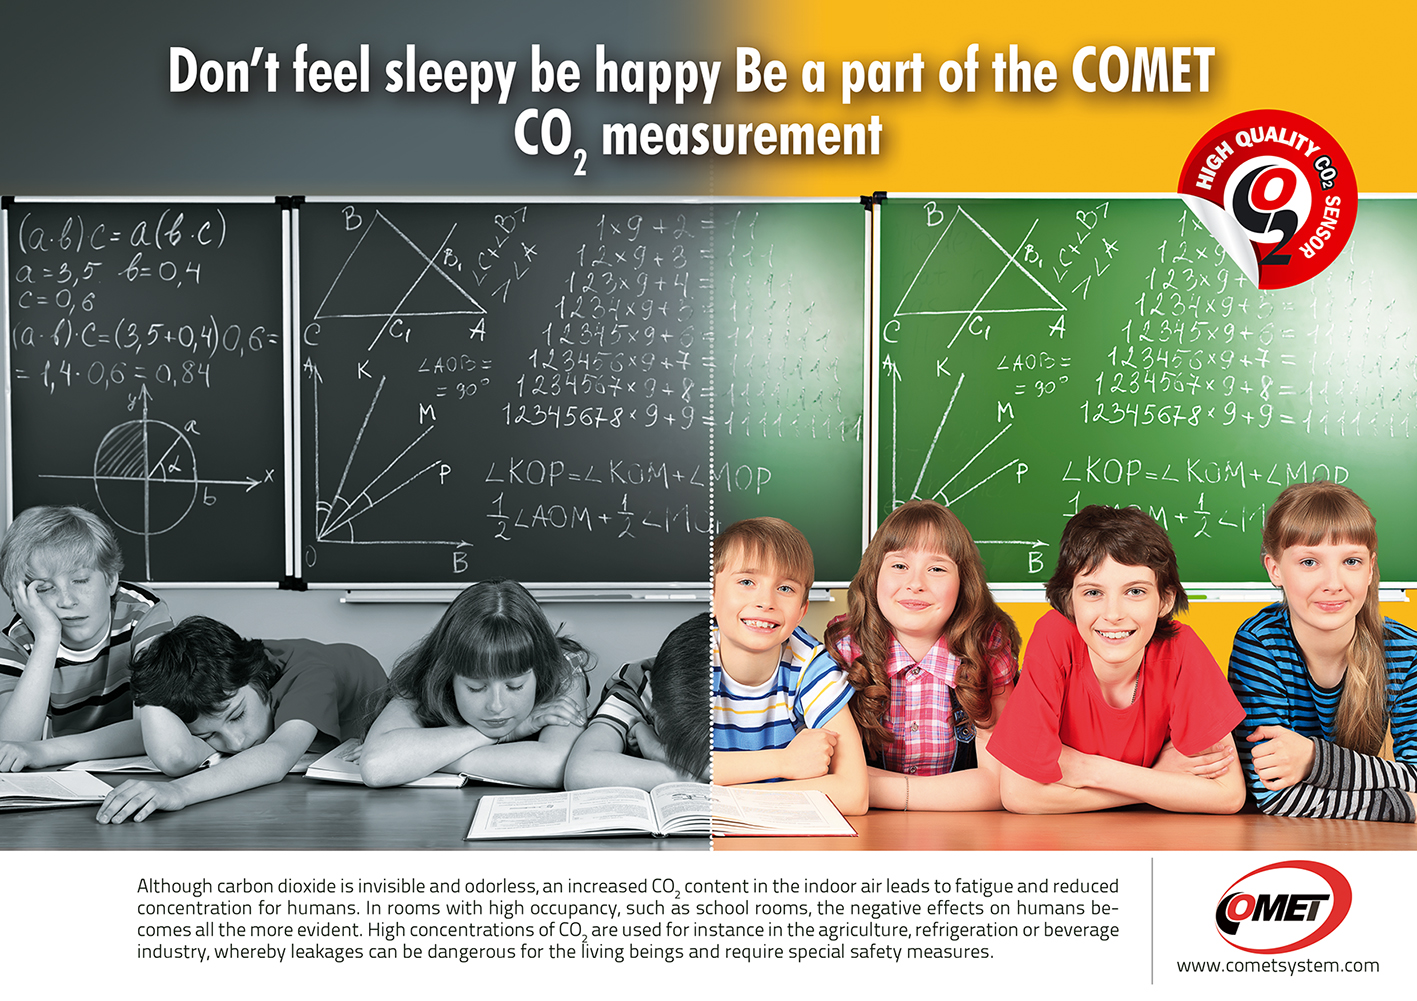 Be Fresh with COMET CO2 measuring